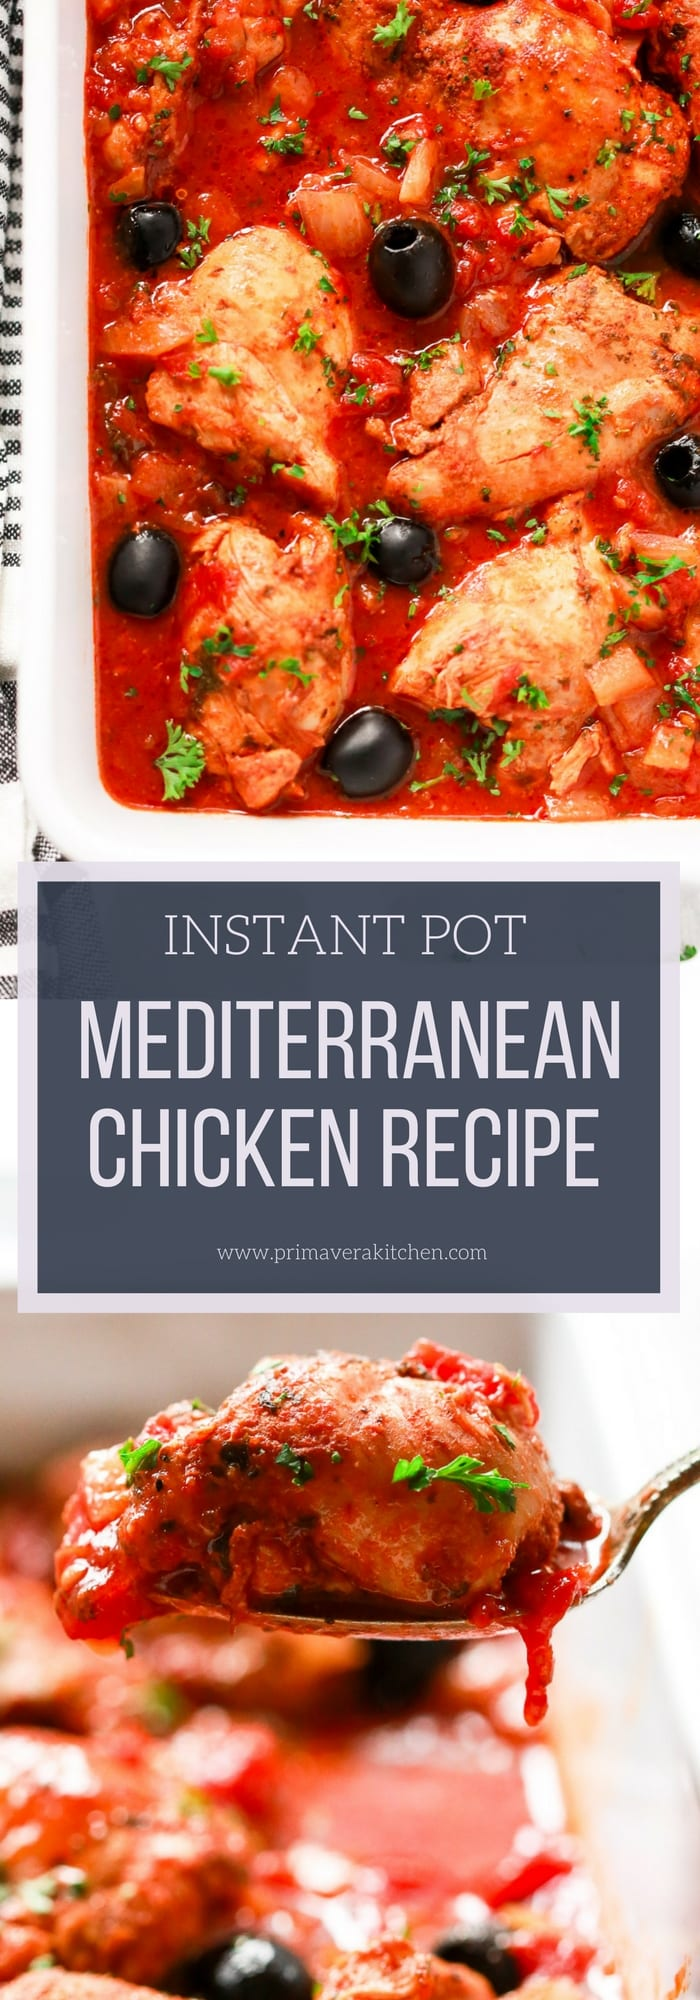 Instant Pot Mediterranean Chicken Recipe - Primavera Kitchen